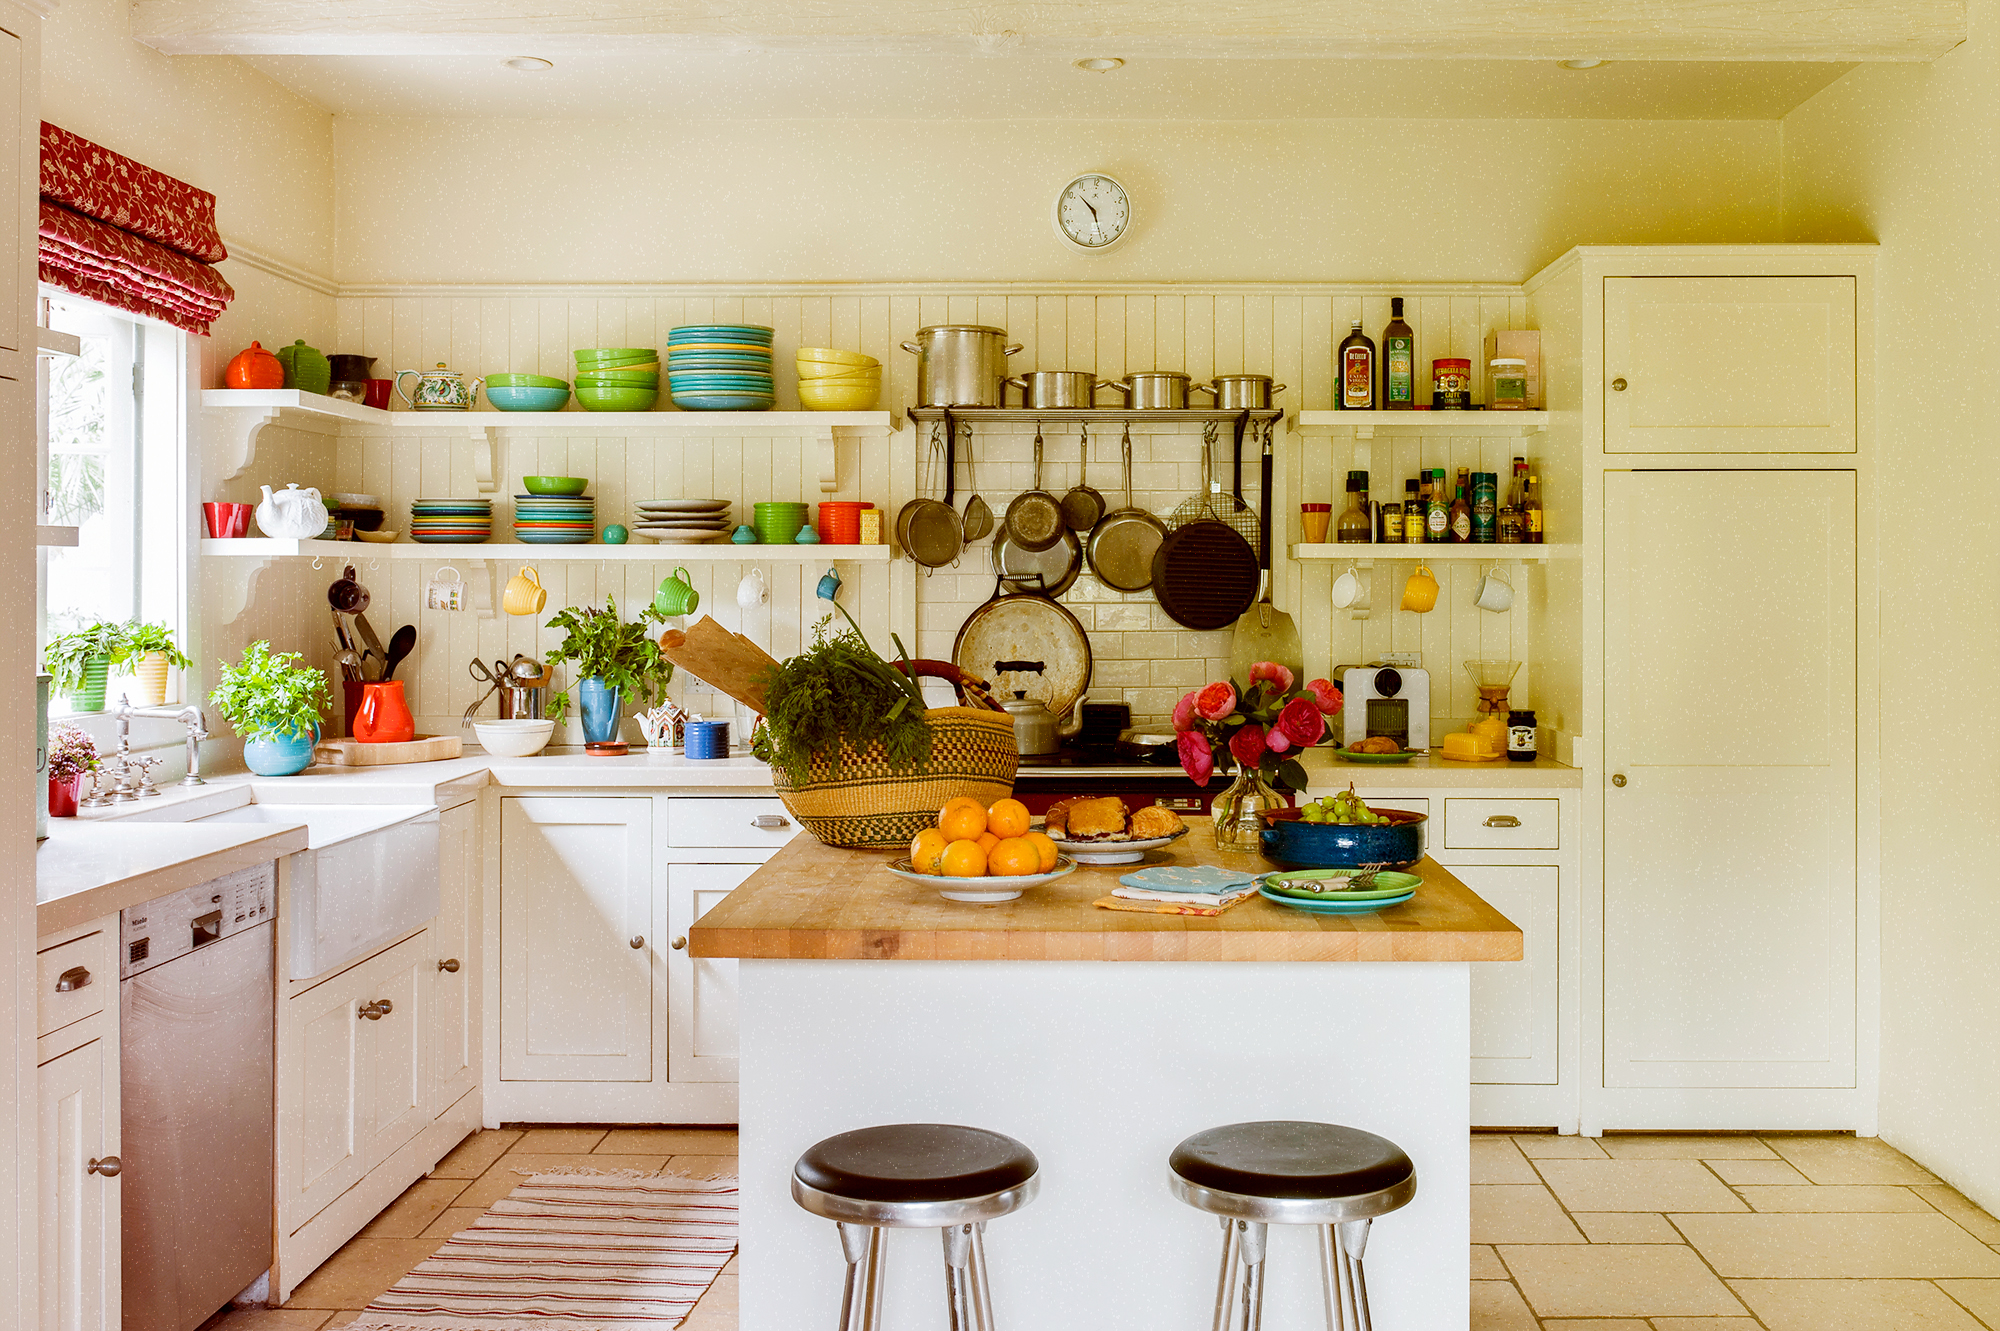 Photo of a home kitchen